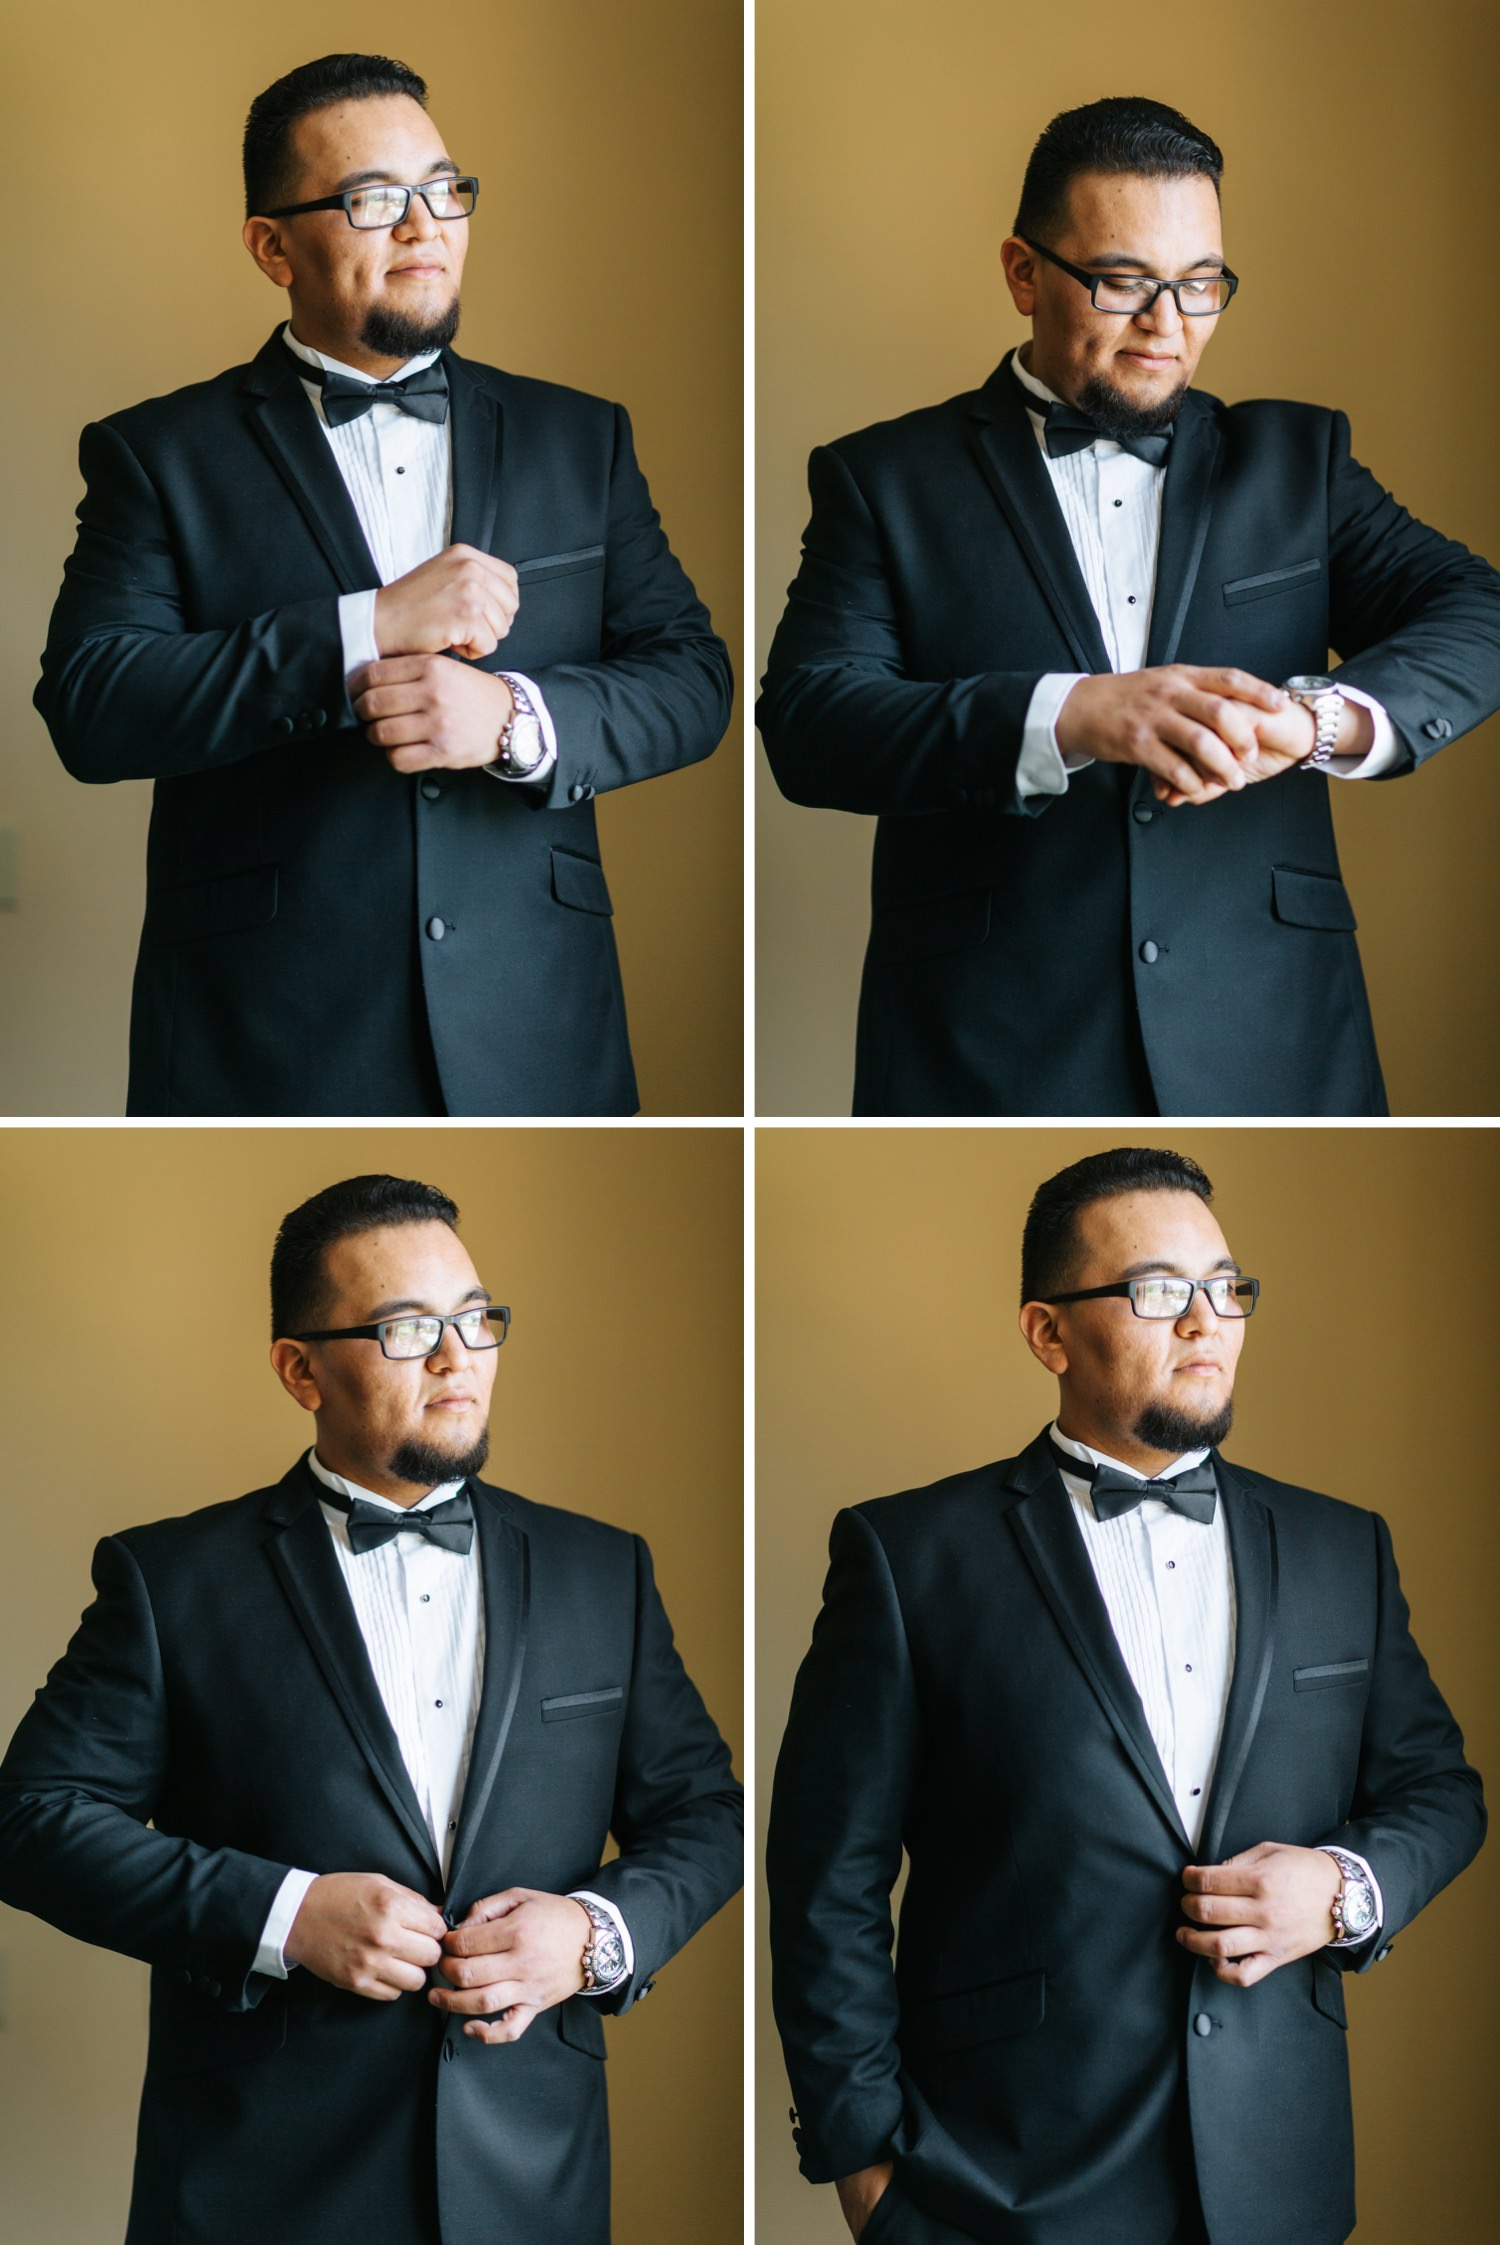 Groom Portraits - https://brittneyhannonphotography.com